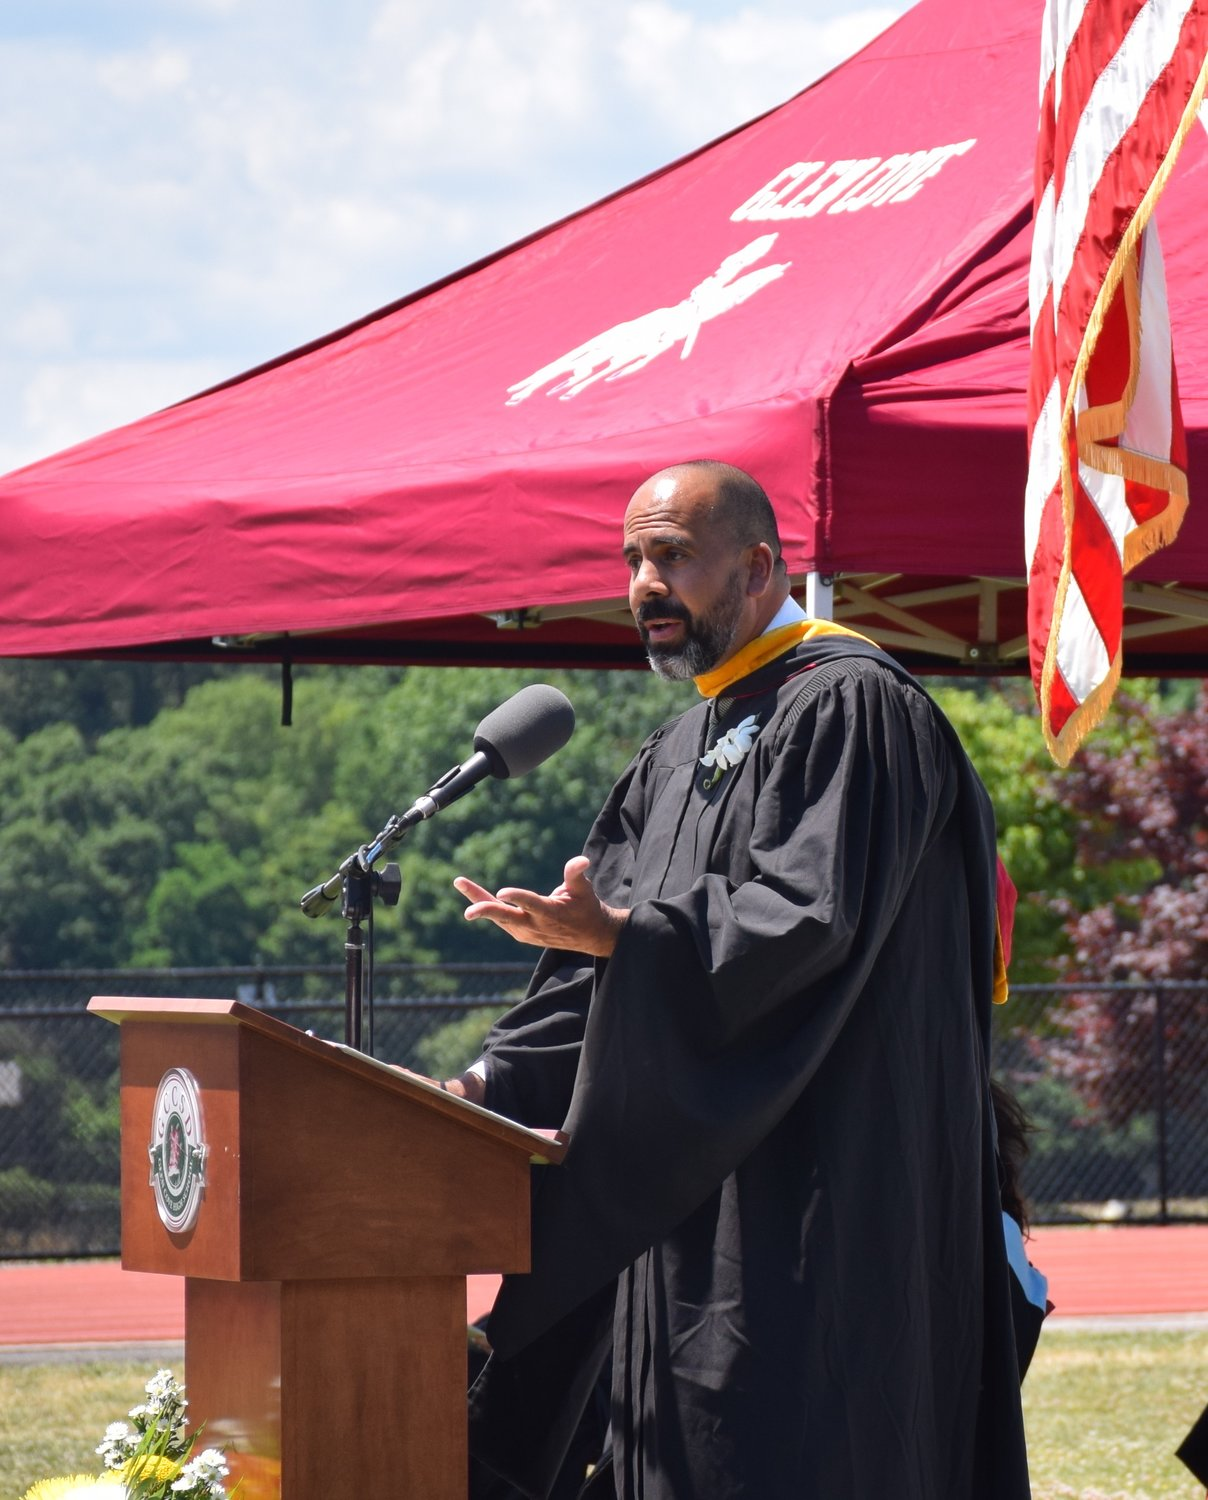 Principal Antonio Santana spoke passionately to the Class of 2020.